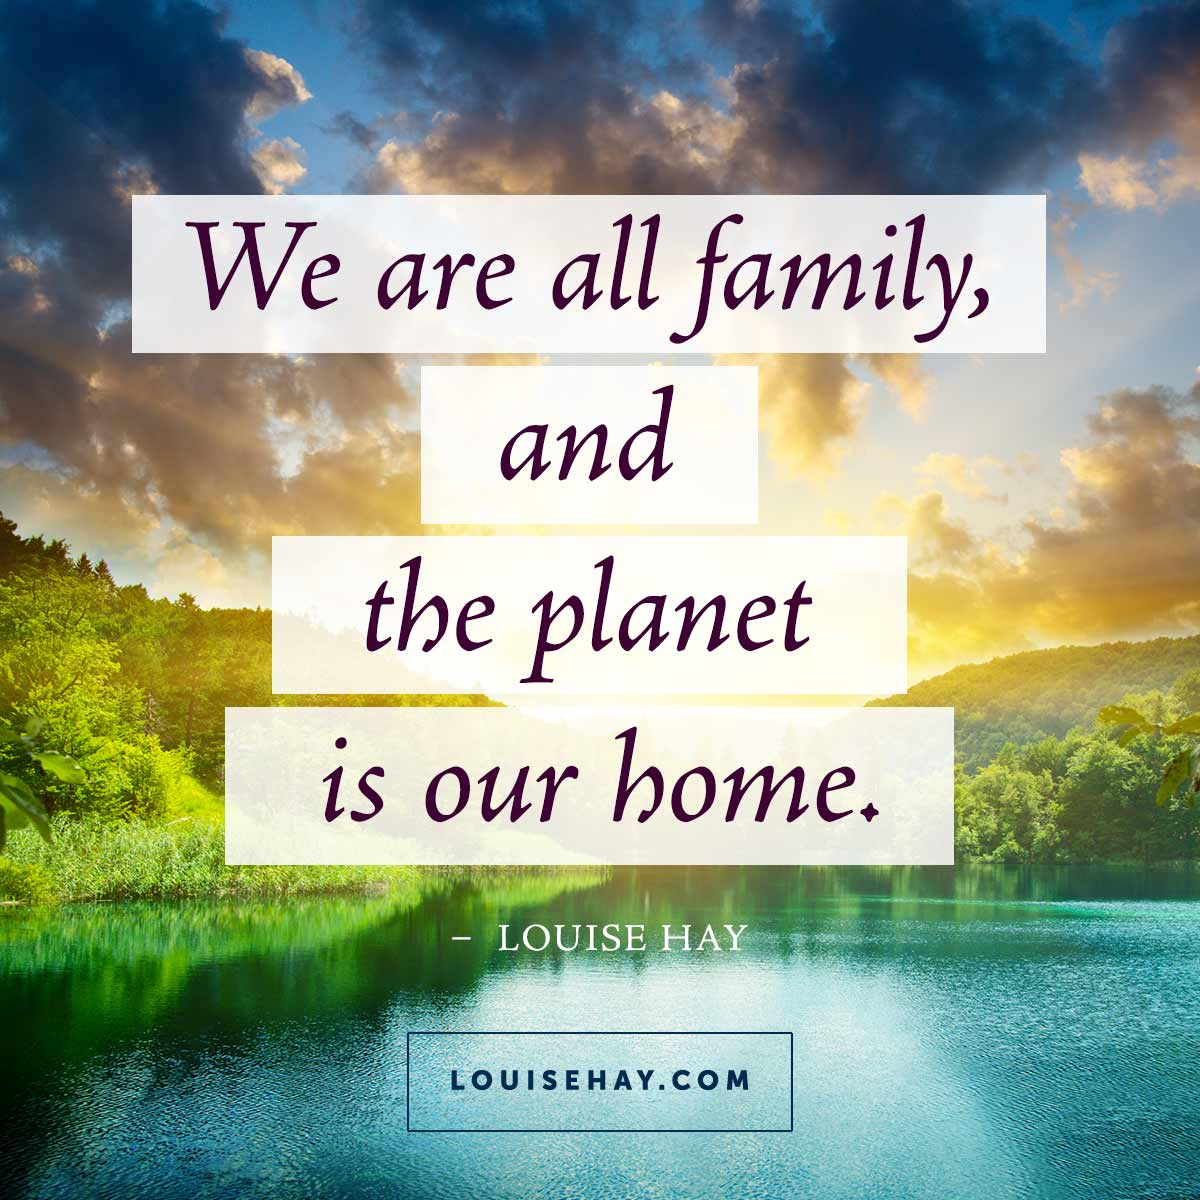 Daily affirmations beautiful quotes from louise hay for Home inspiration